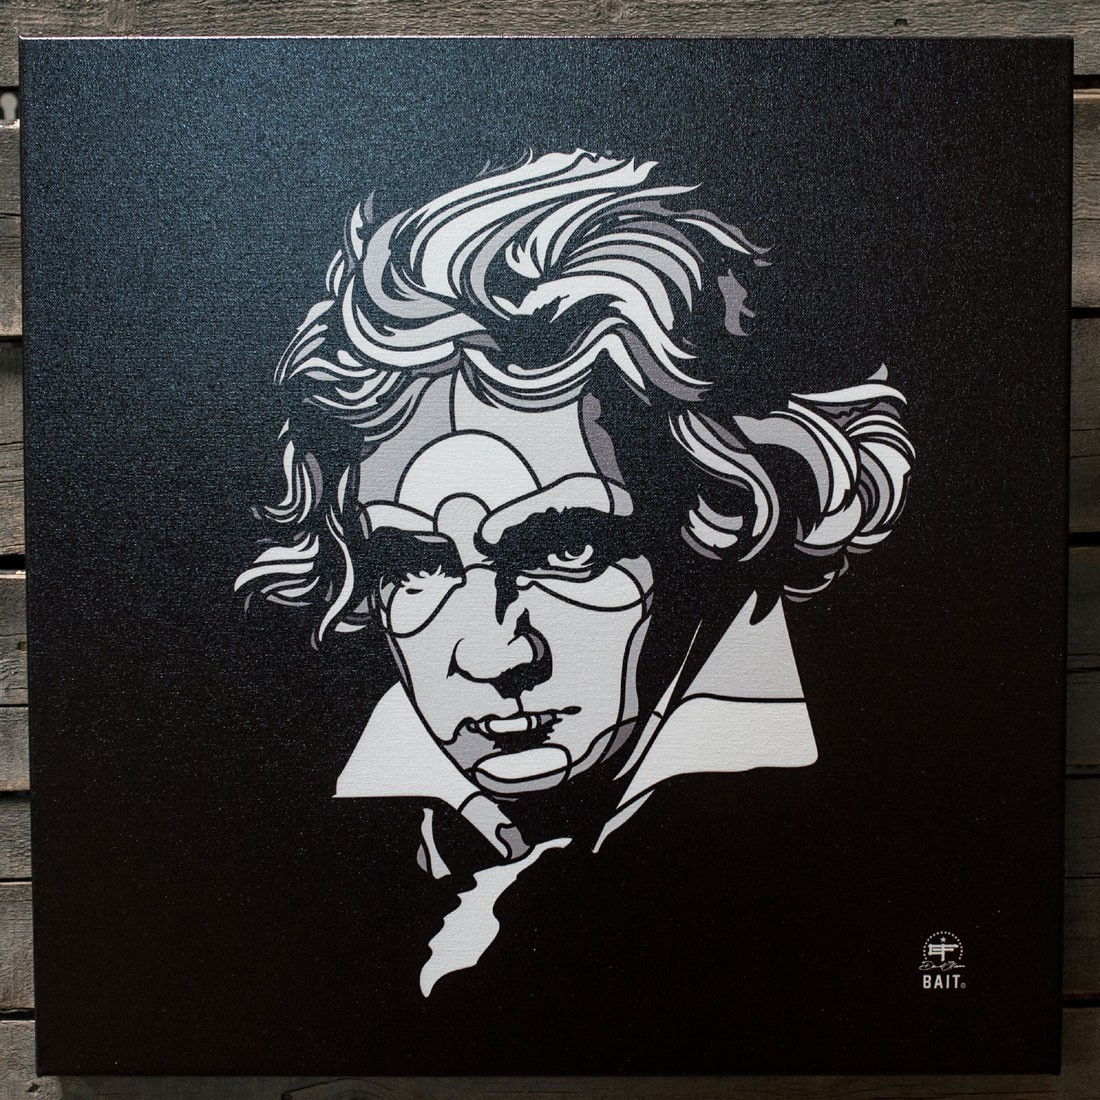 BAIT x David Flores 48 Inch Canvas - Beethoven (black / white)